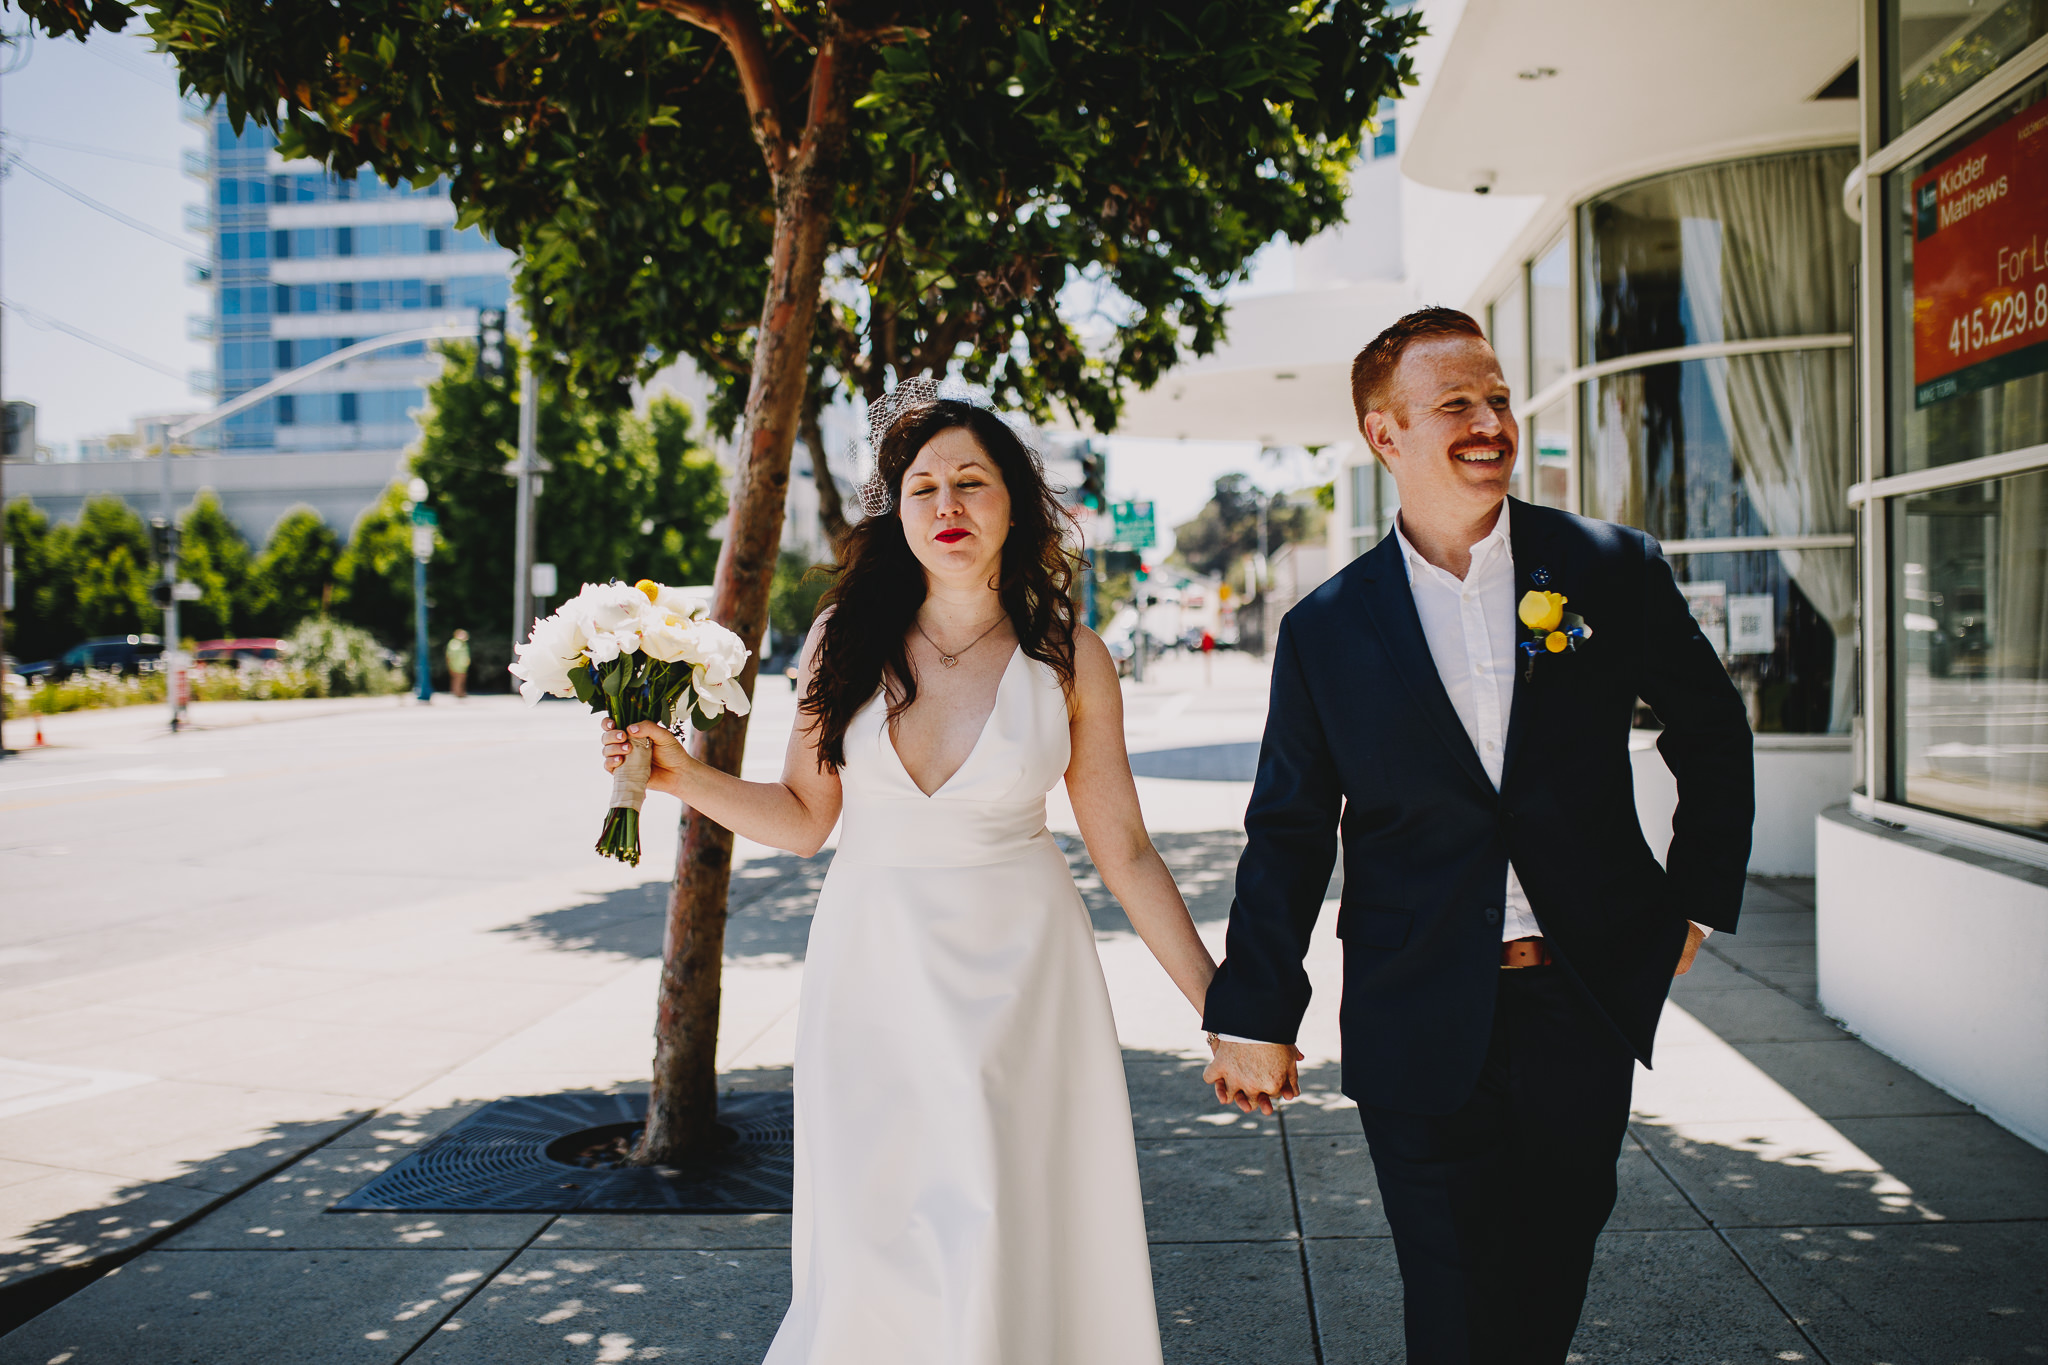 Archer Inspired Photography SF City Hall Elopement Wedding Lifestyle Documentary Affordable Photographer-349.jpg